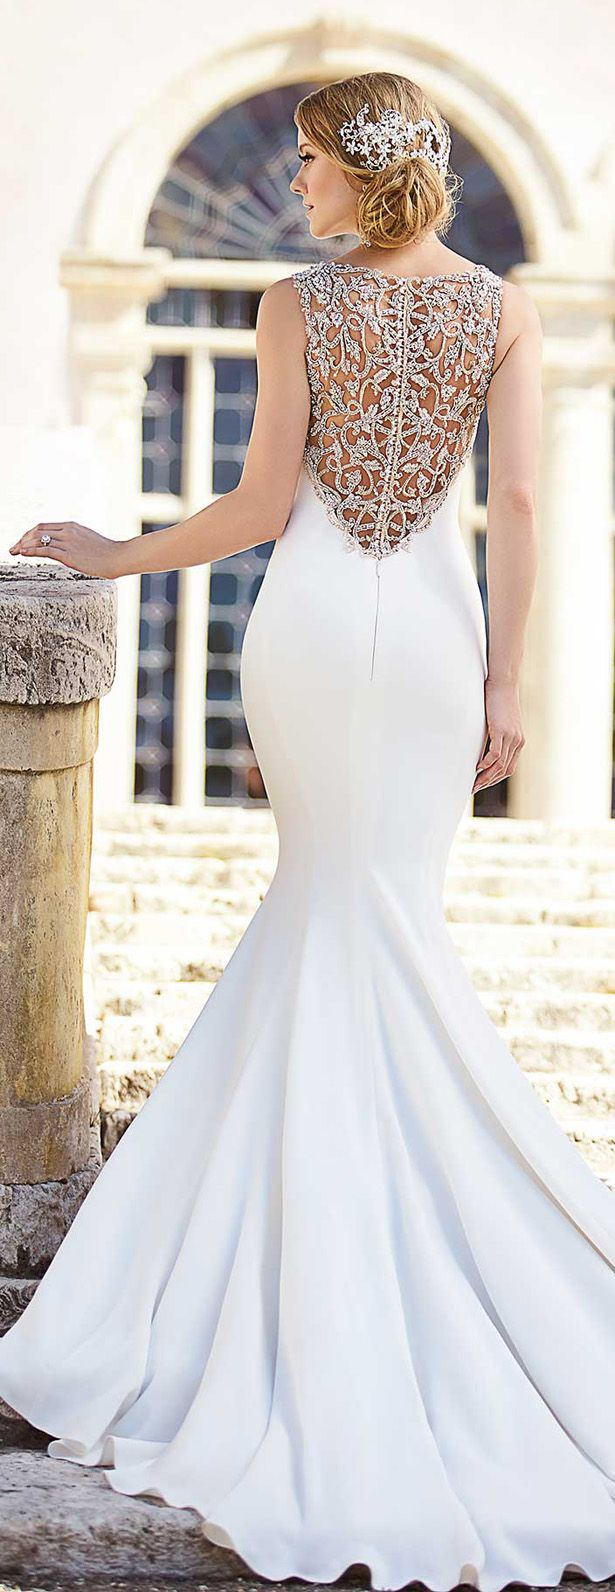 Dress designed by Martina Liana View Post View Gallery FIND A STORE